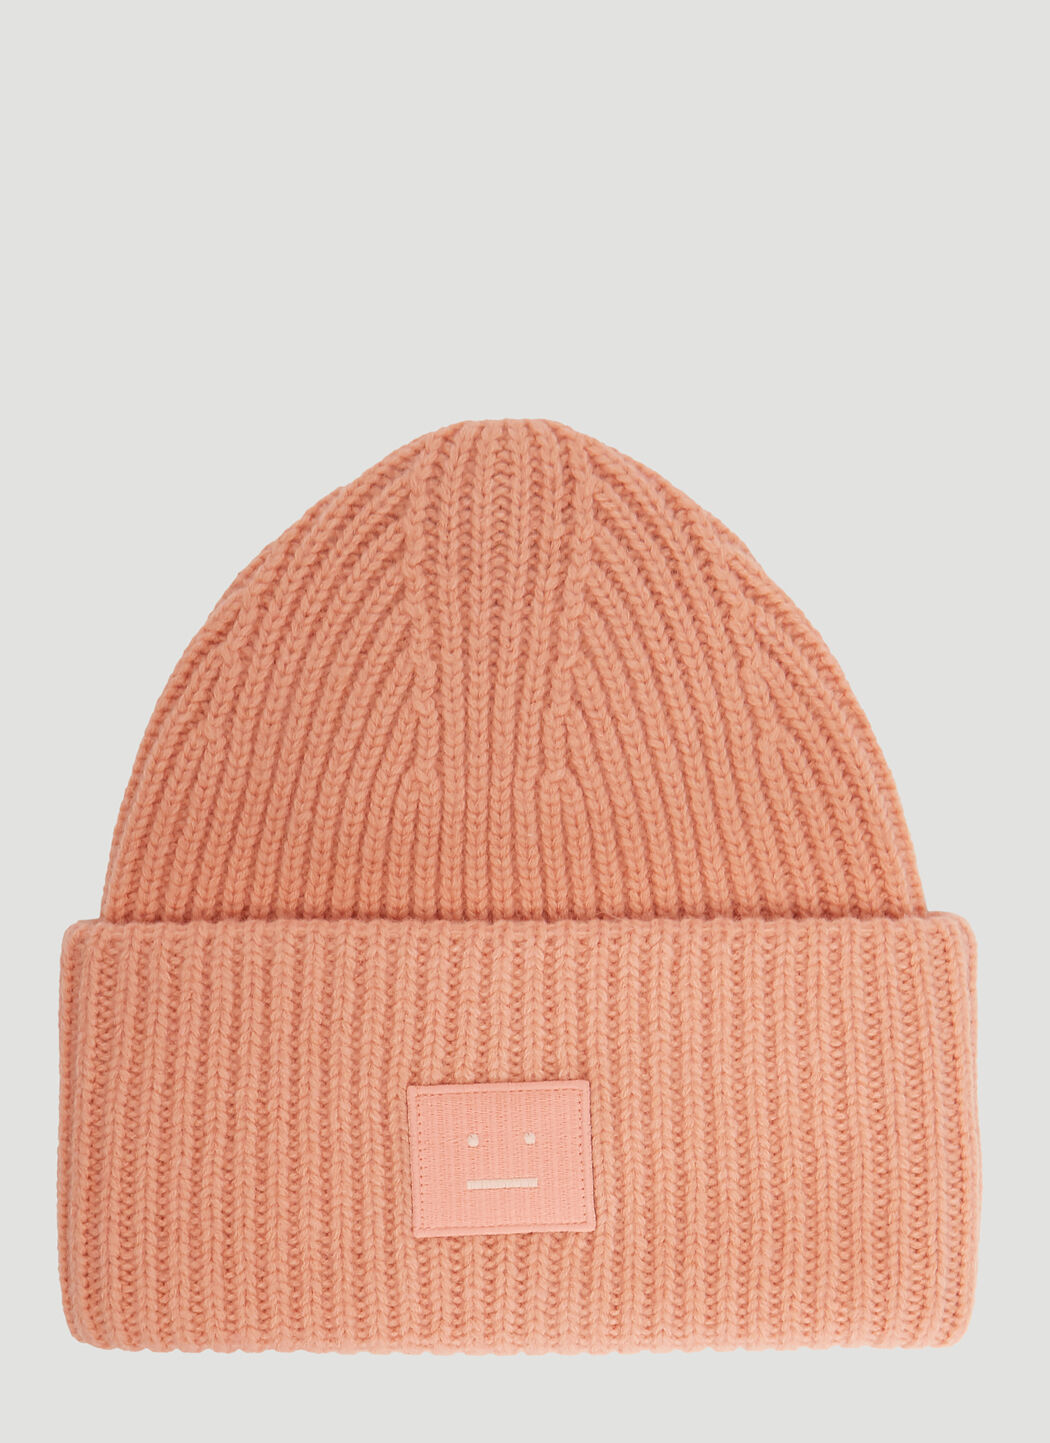 ef412b7d378 Acne Studios Pansy S Face Ribbed-Knit Beanie Hat In Light Pink ...